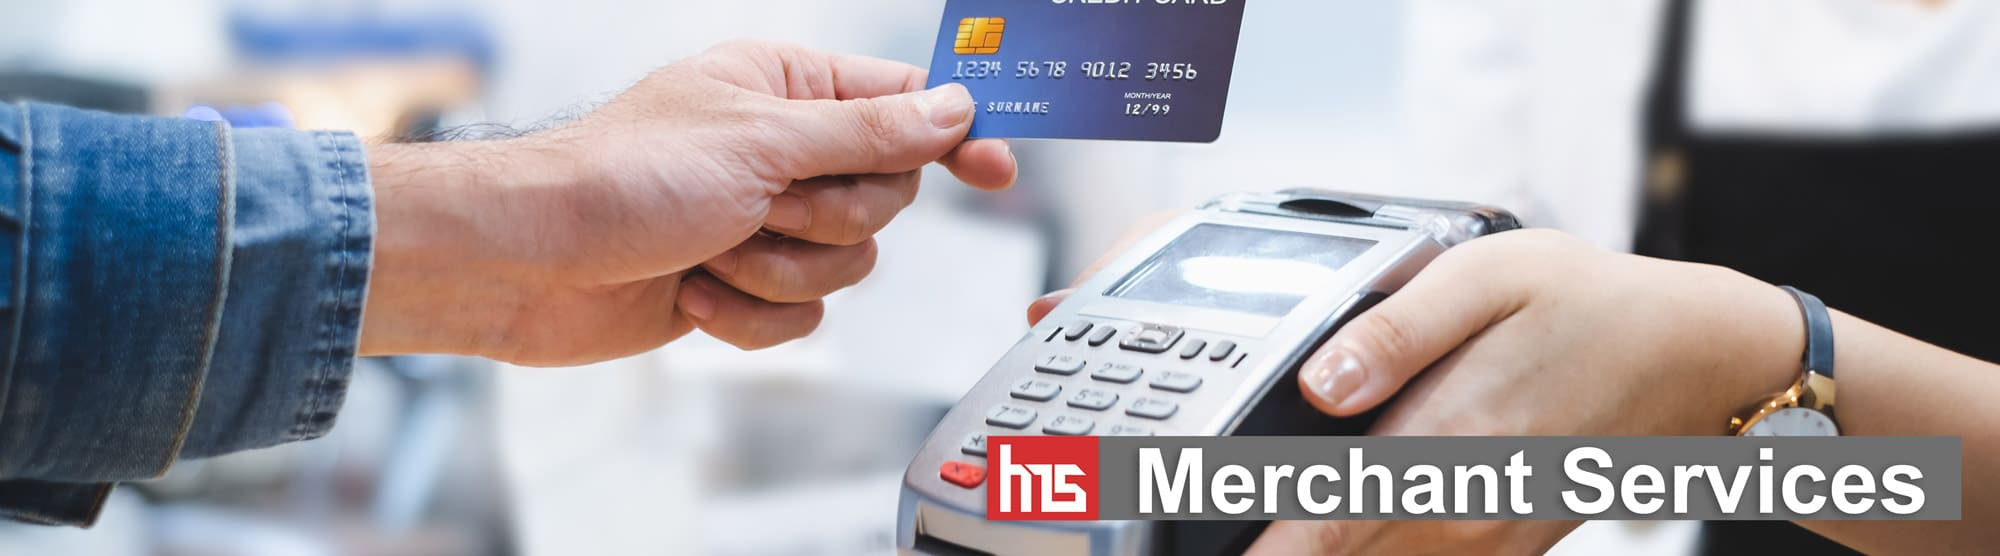 Merchant Services - merchant using payment processing on point of sale terminal